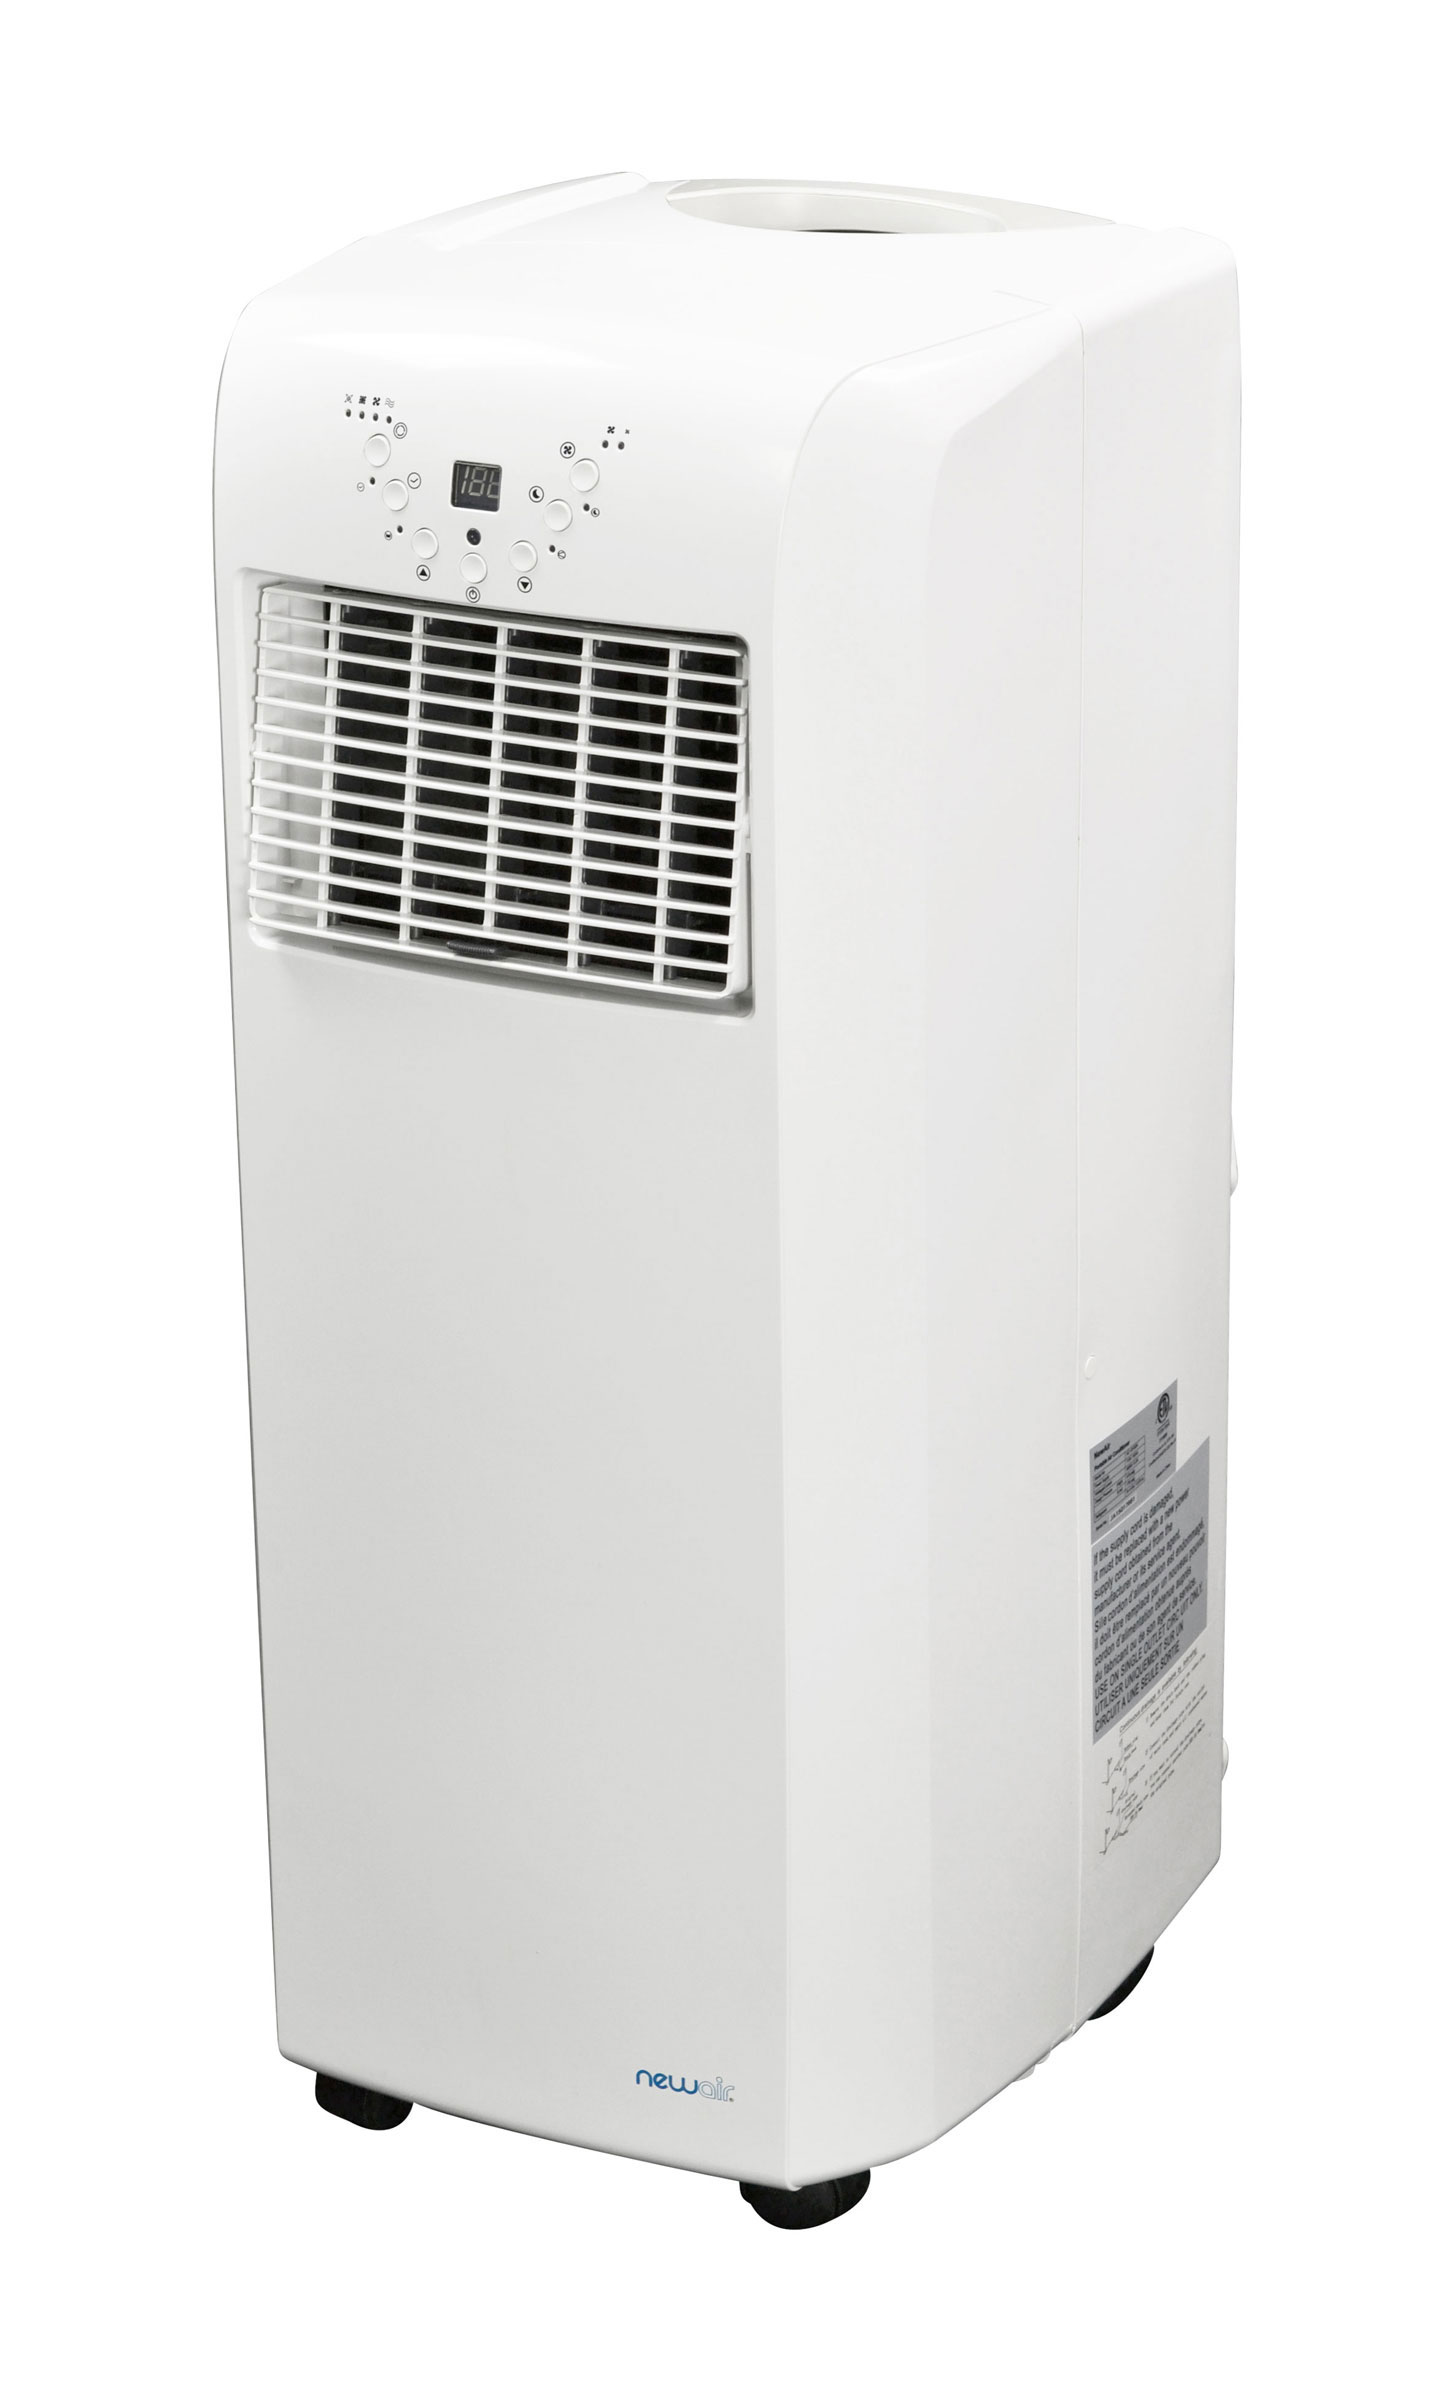 NEWAIR AC-10100H Portable Air Conditioning and Heater Combo